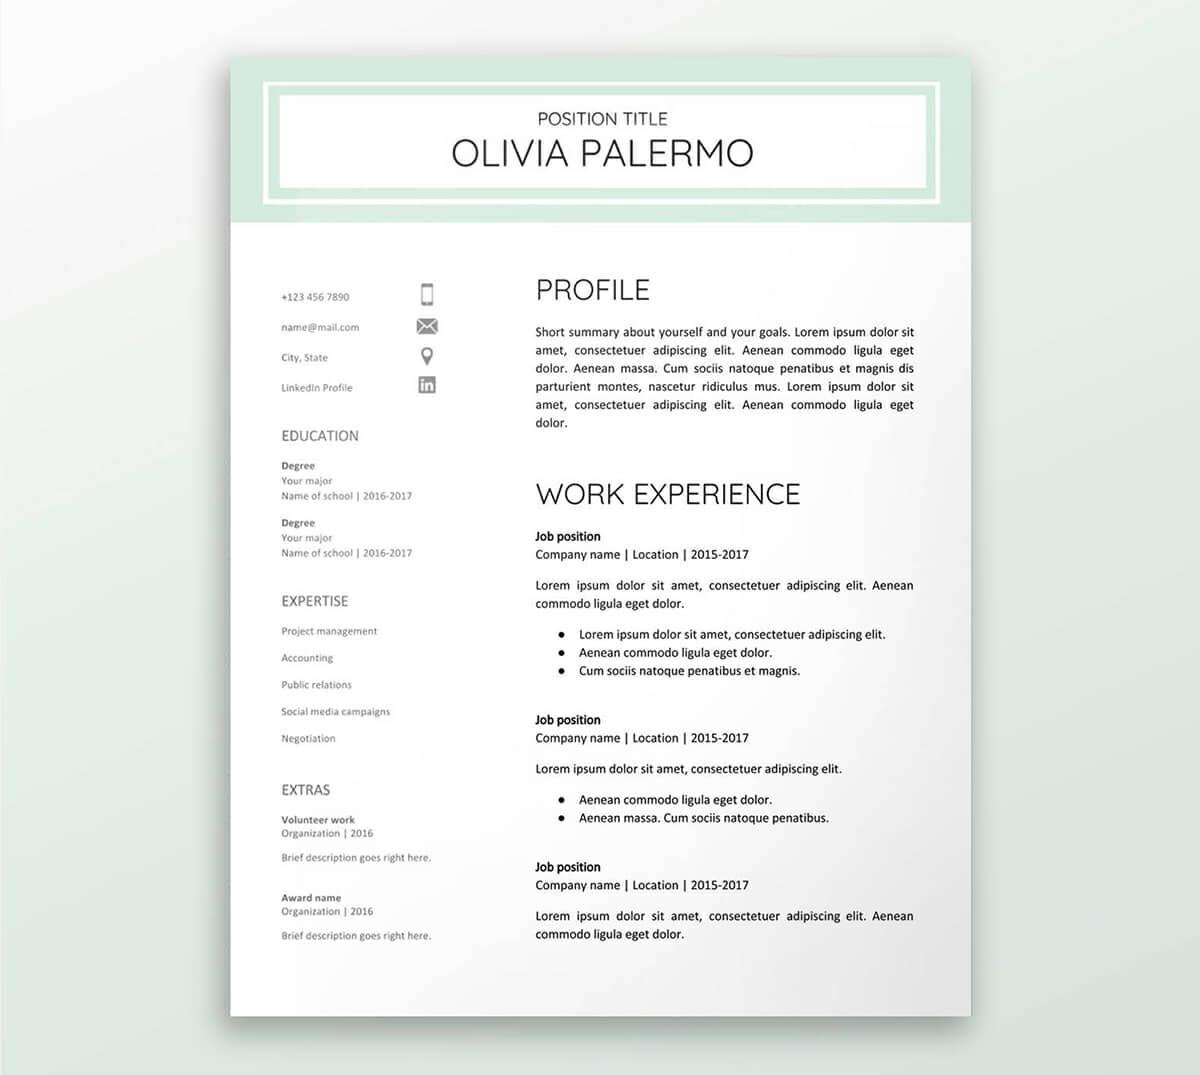 Free Sample Resume Templates Examples: Google Docs Resume Templates: 10 Examples To Download